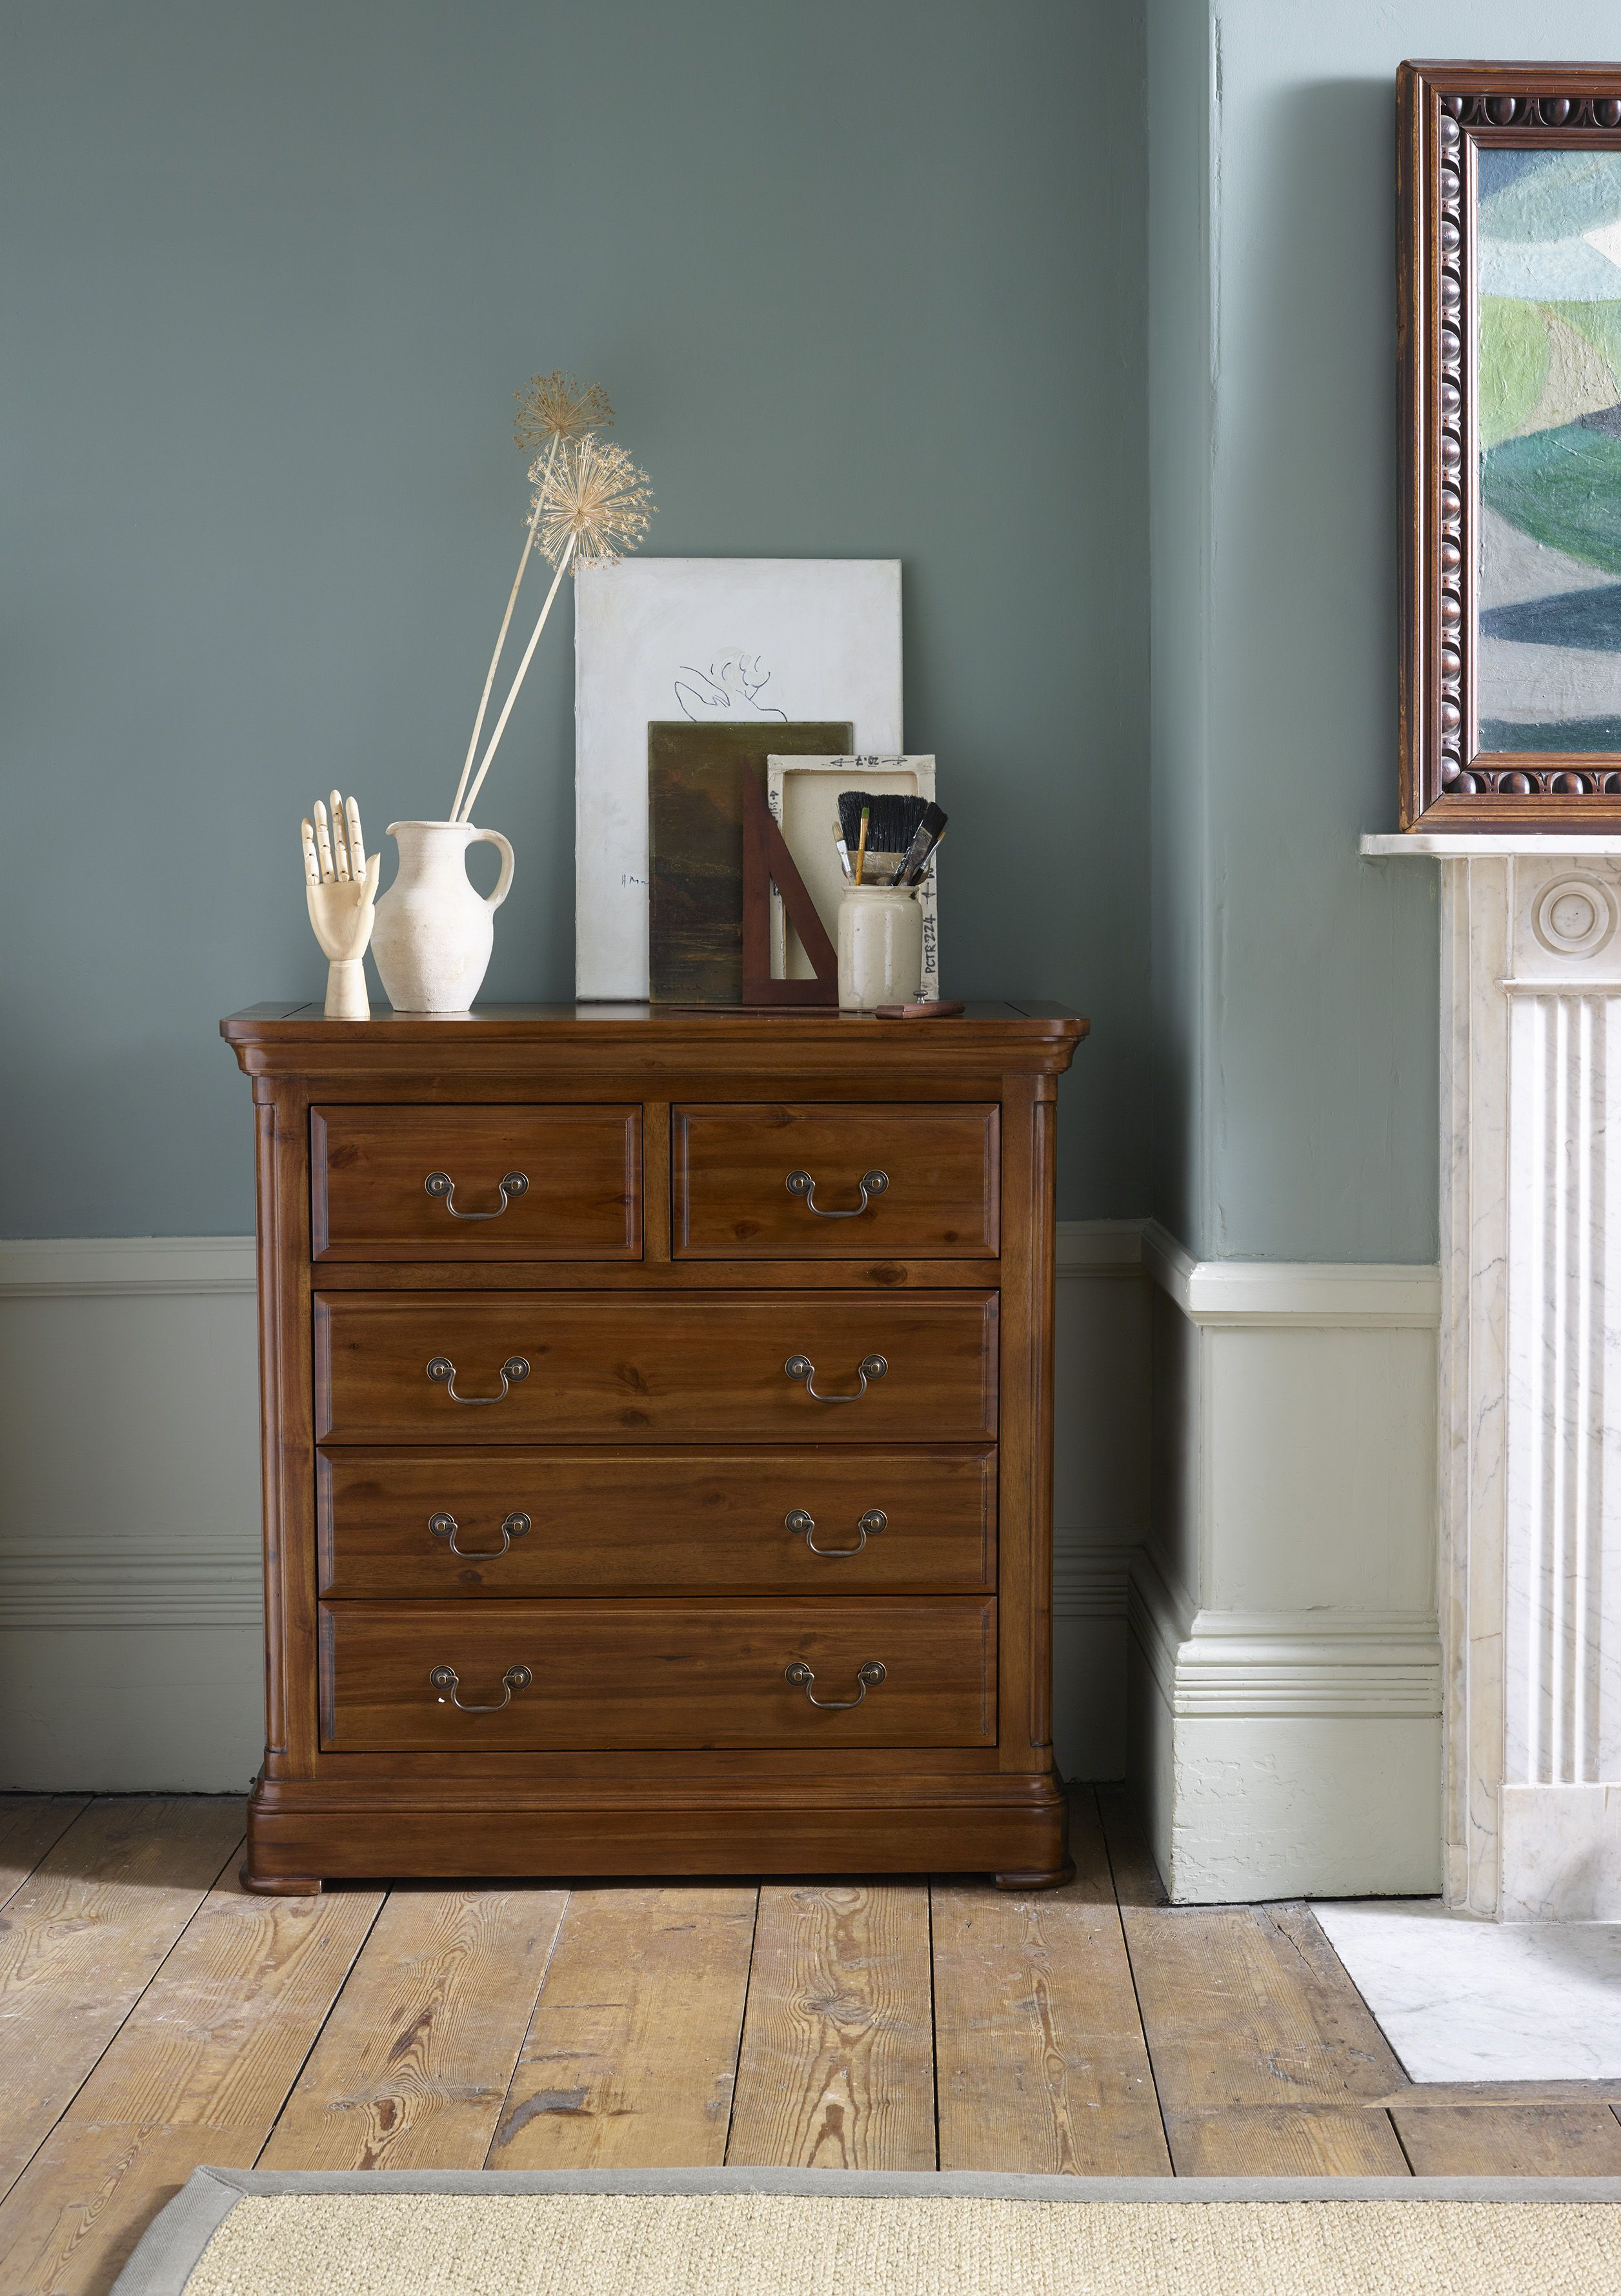 Inspired by classic furniture design our Cranbrook 3 2 chest of